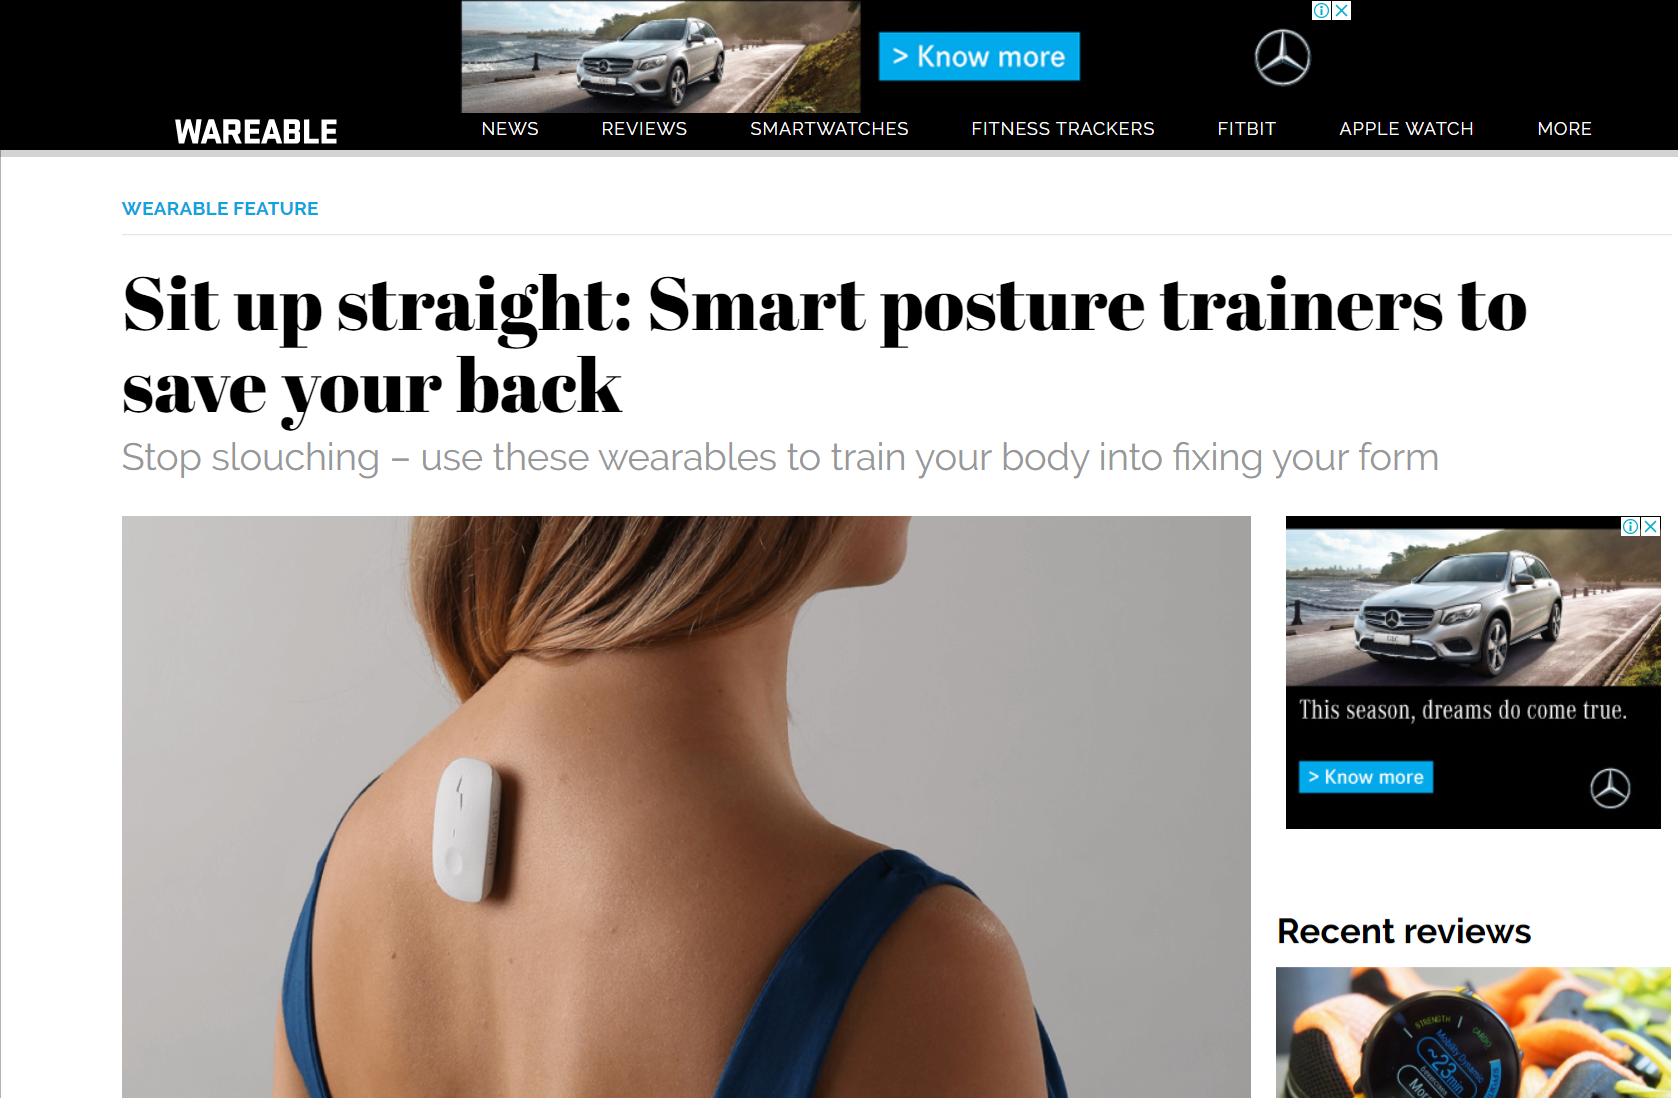 Press coverage in Wearable